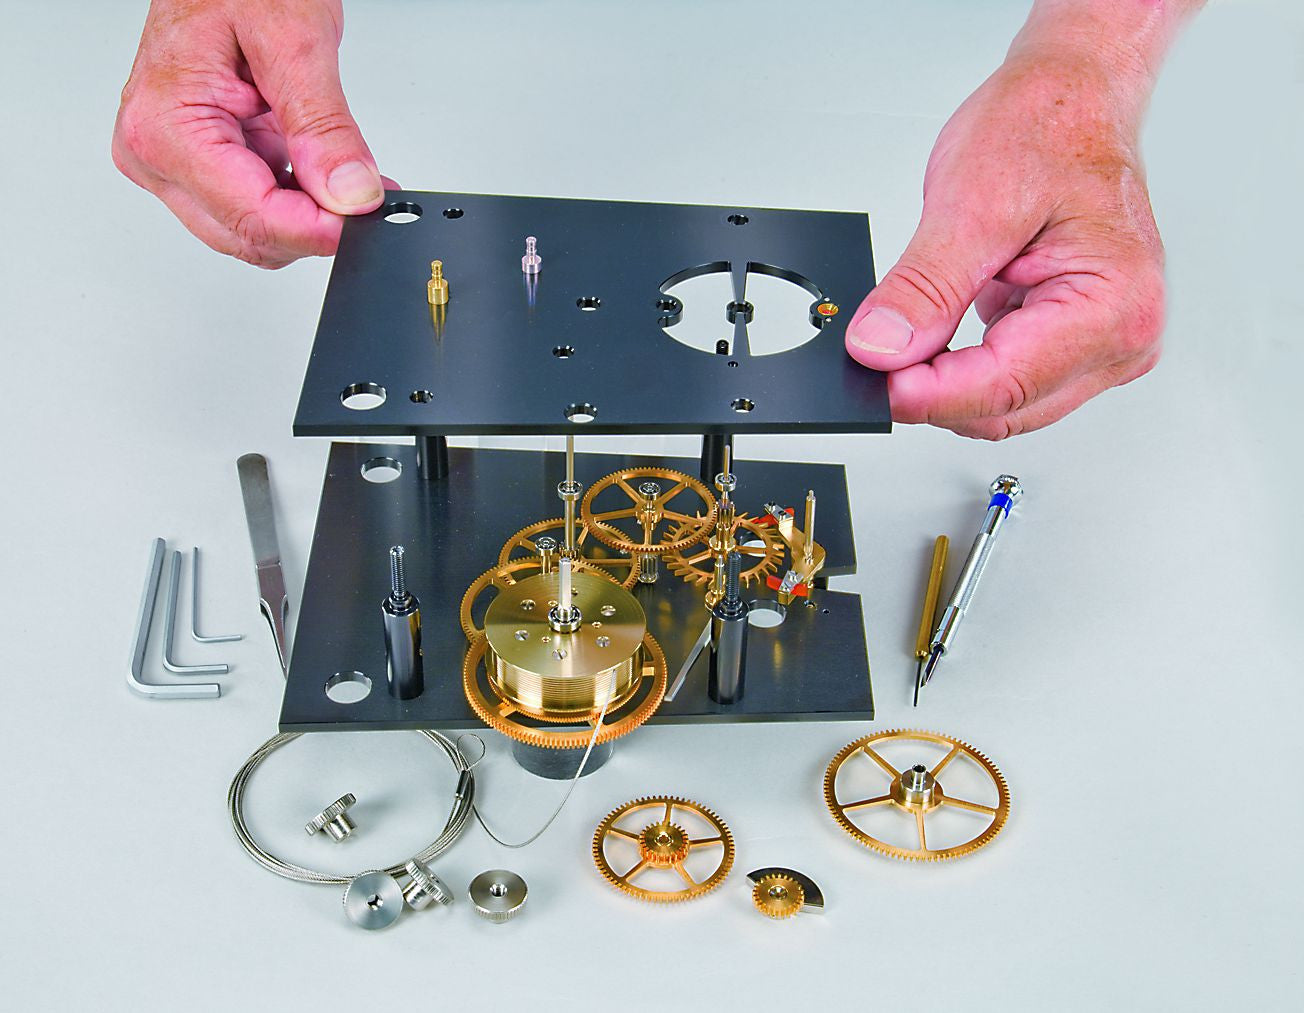 Erwin Sattler Mechanica M1 Exclusive DIY kit for Modern Precision Pendulum Clock